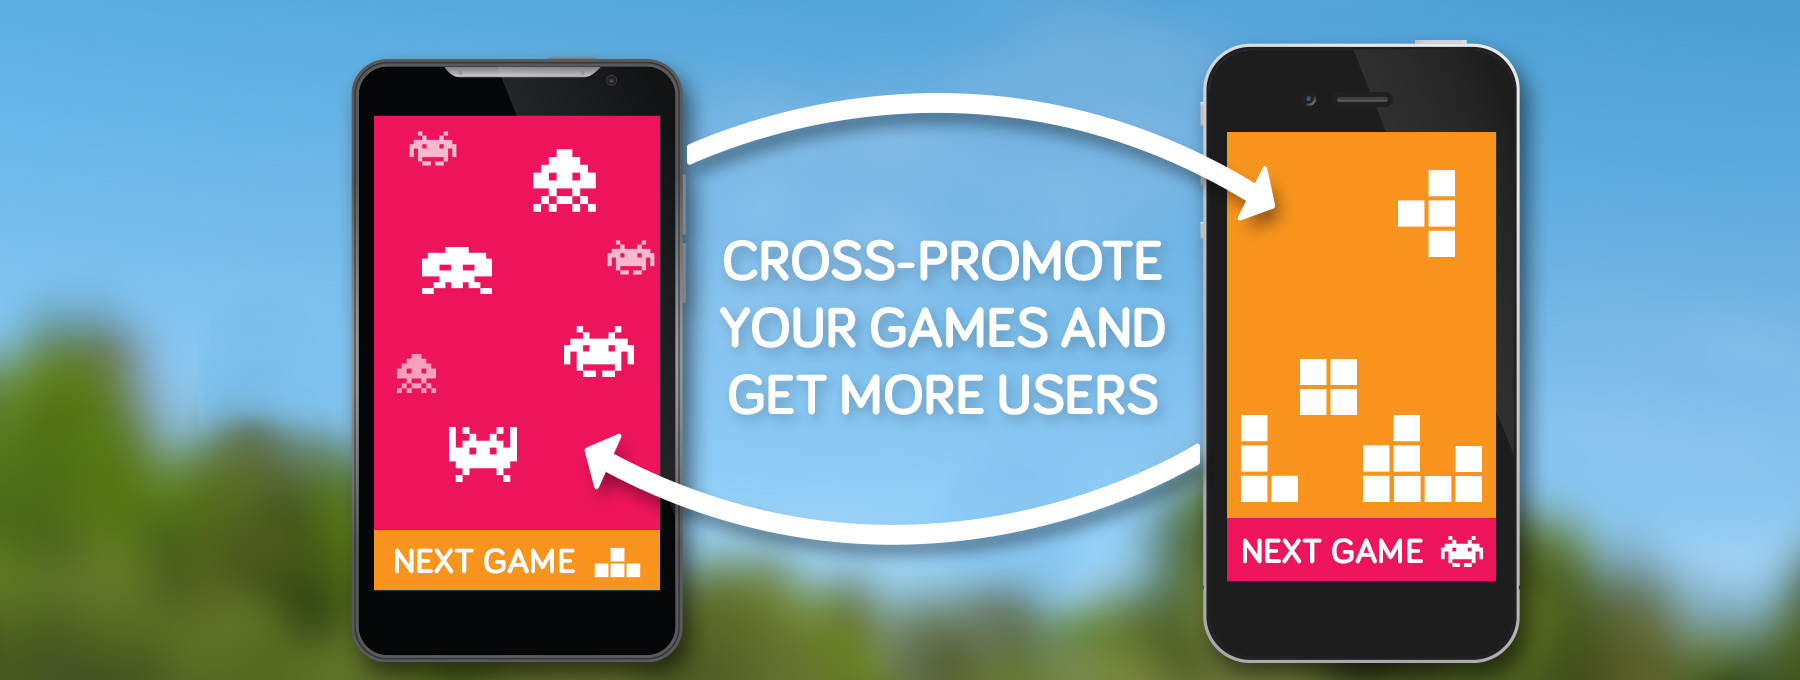 Cross promote your games and get more users.